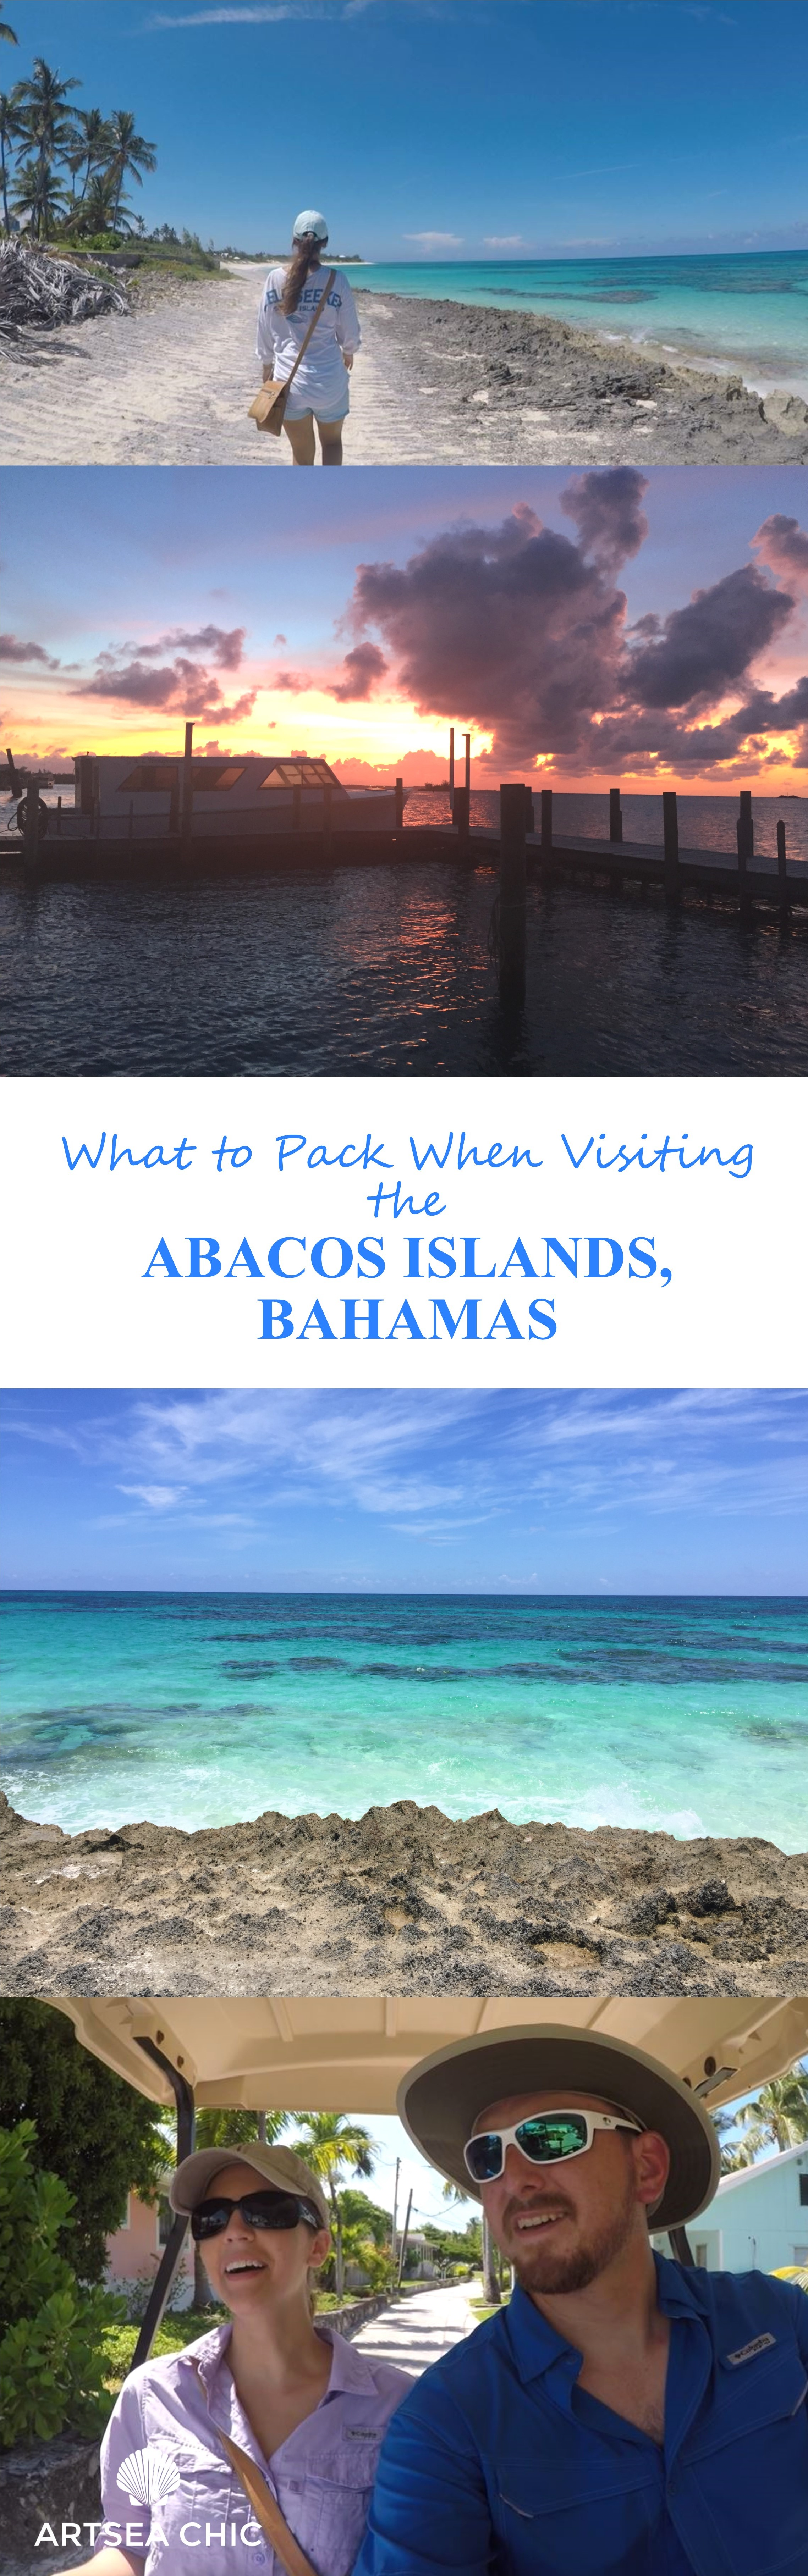 What to Pack When Visiting the Abacos.jpg